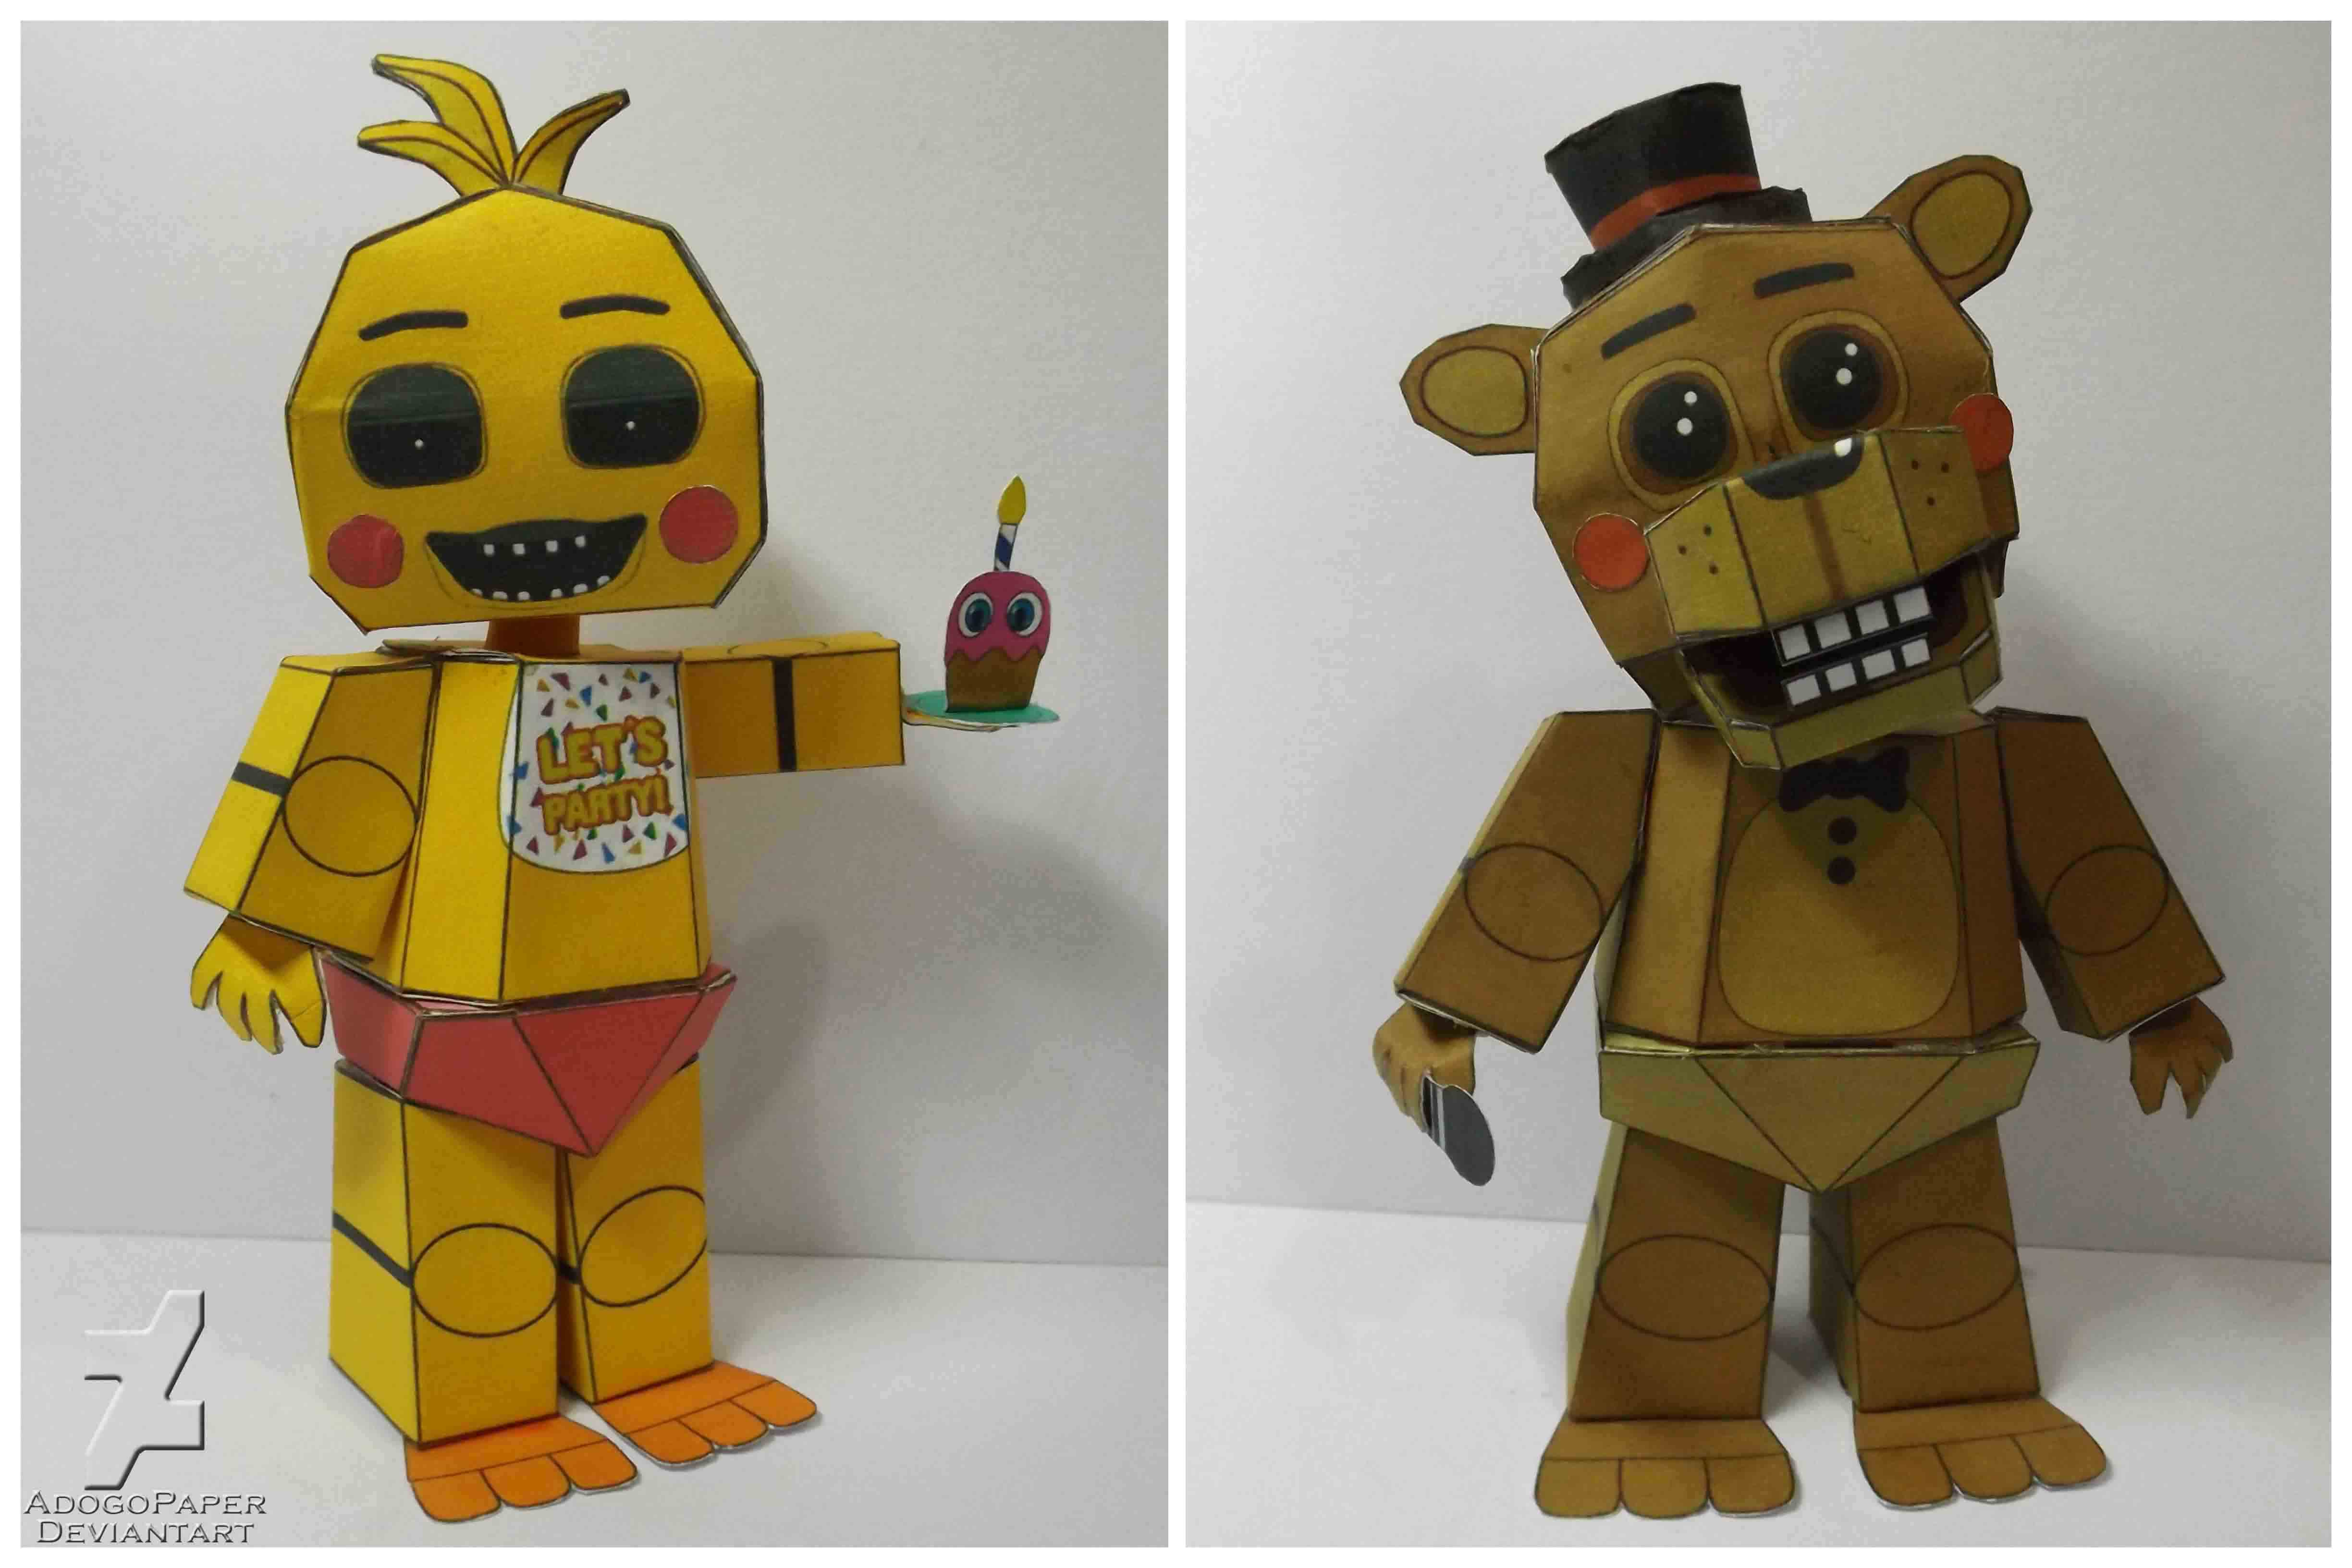 Fnaf 2 toy chica and toy freddy night mode by adogopaper on deviantart